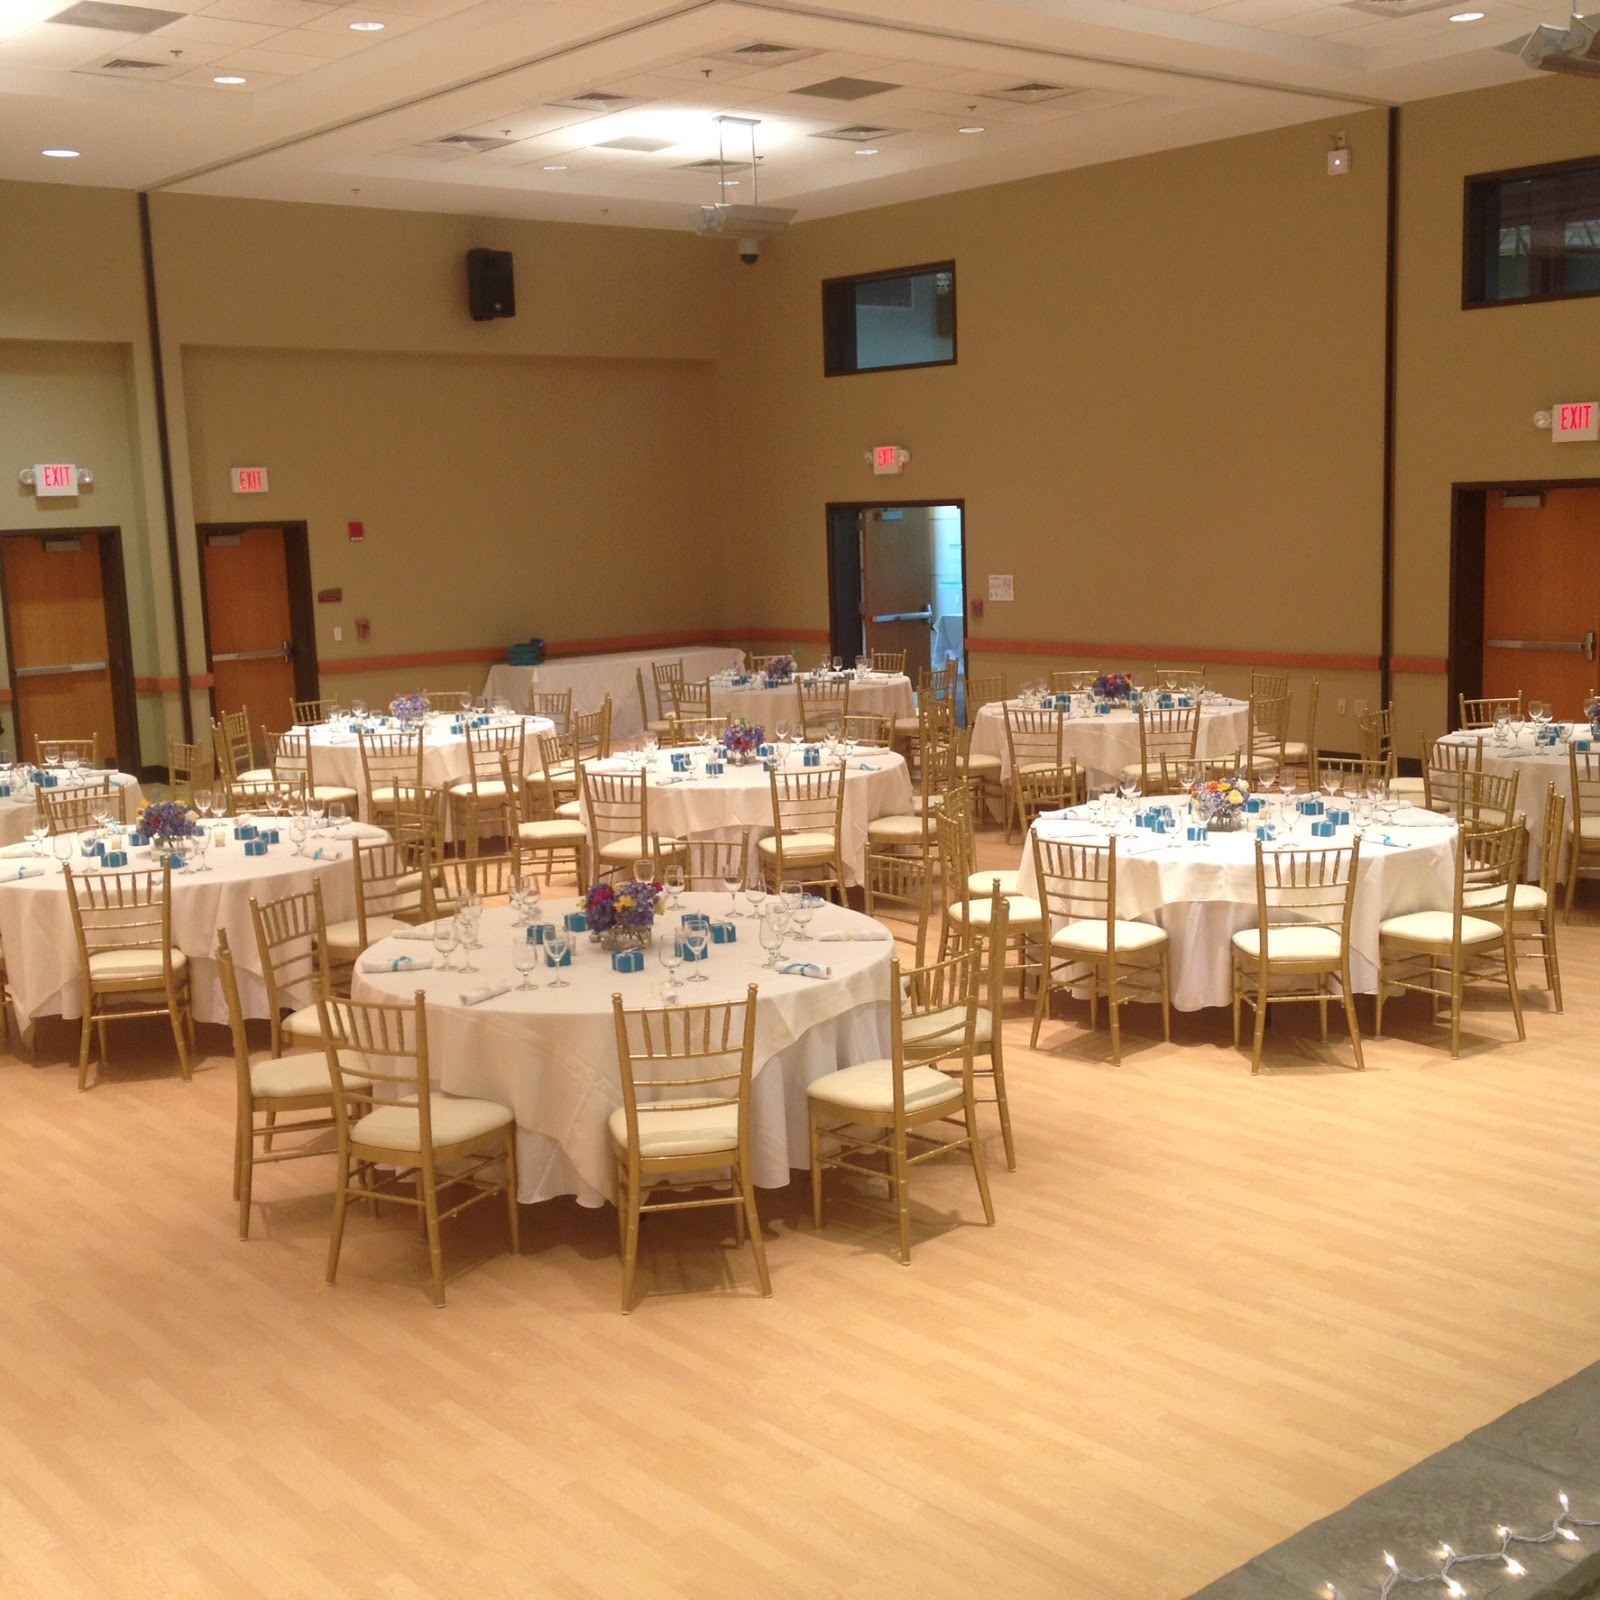 Pg county ballroom wedding venues